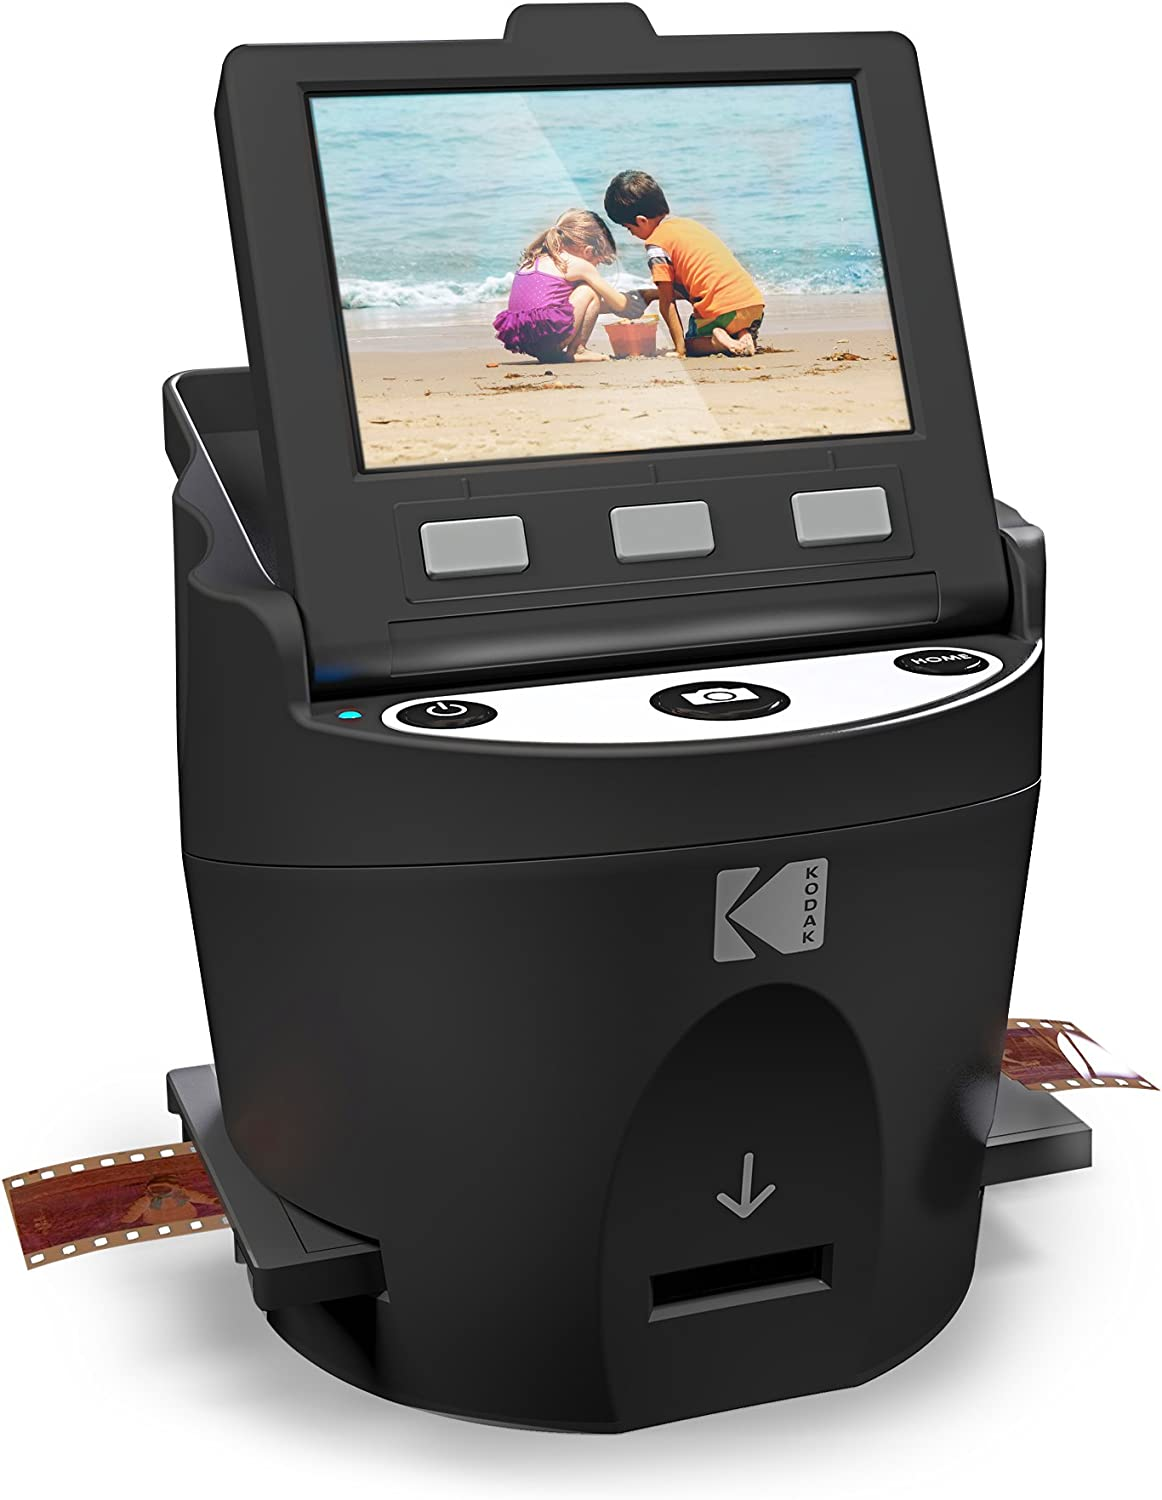 "KODAK SCANZA Digital Film & Slide Scanner - Converts 35mm, 126, 110, Super 8 & 8mm Film Negatives & Slides to JPEG - Includes Large Tilt-Up 3.5"" LCD, Easy-Load Film Inserts, Adapters & More: Office Products"